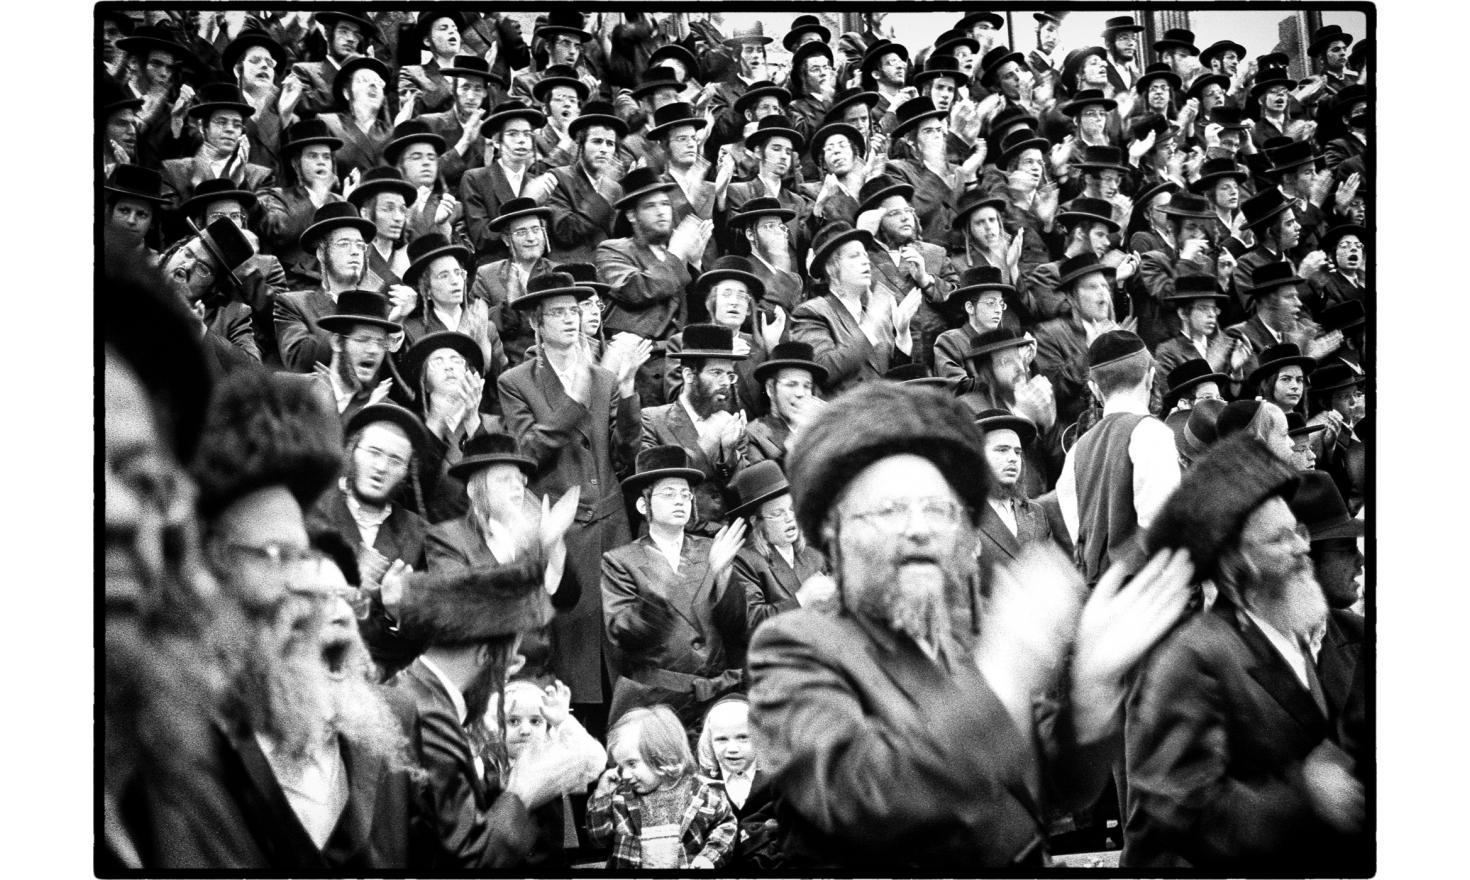 Haredim in a synagogue during festivities. Jerusalem, Israel. September 2009.